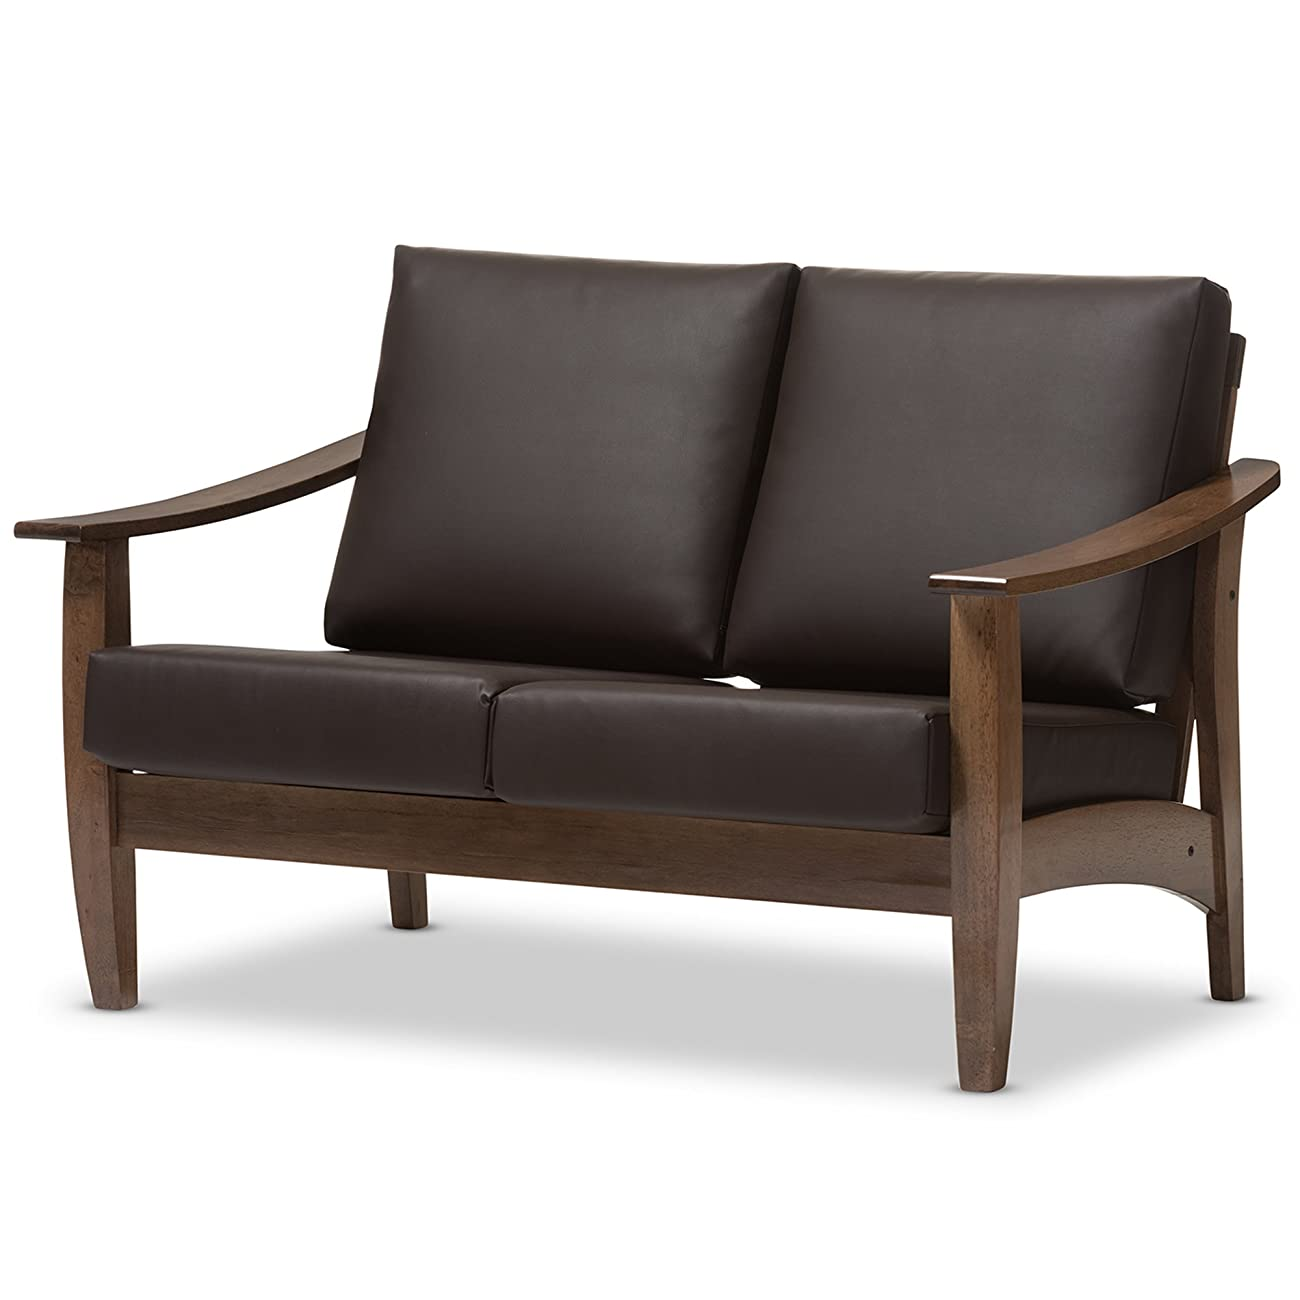 Baxton Studio Philbert Mid Century Modern Walnut Wood and Dark Brown Faux Leather 2 Seater Loveseat Sofa 2